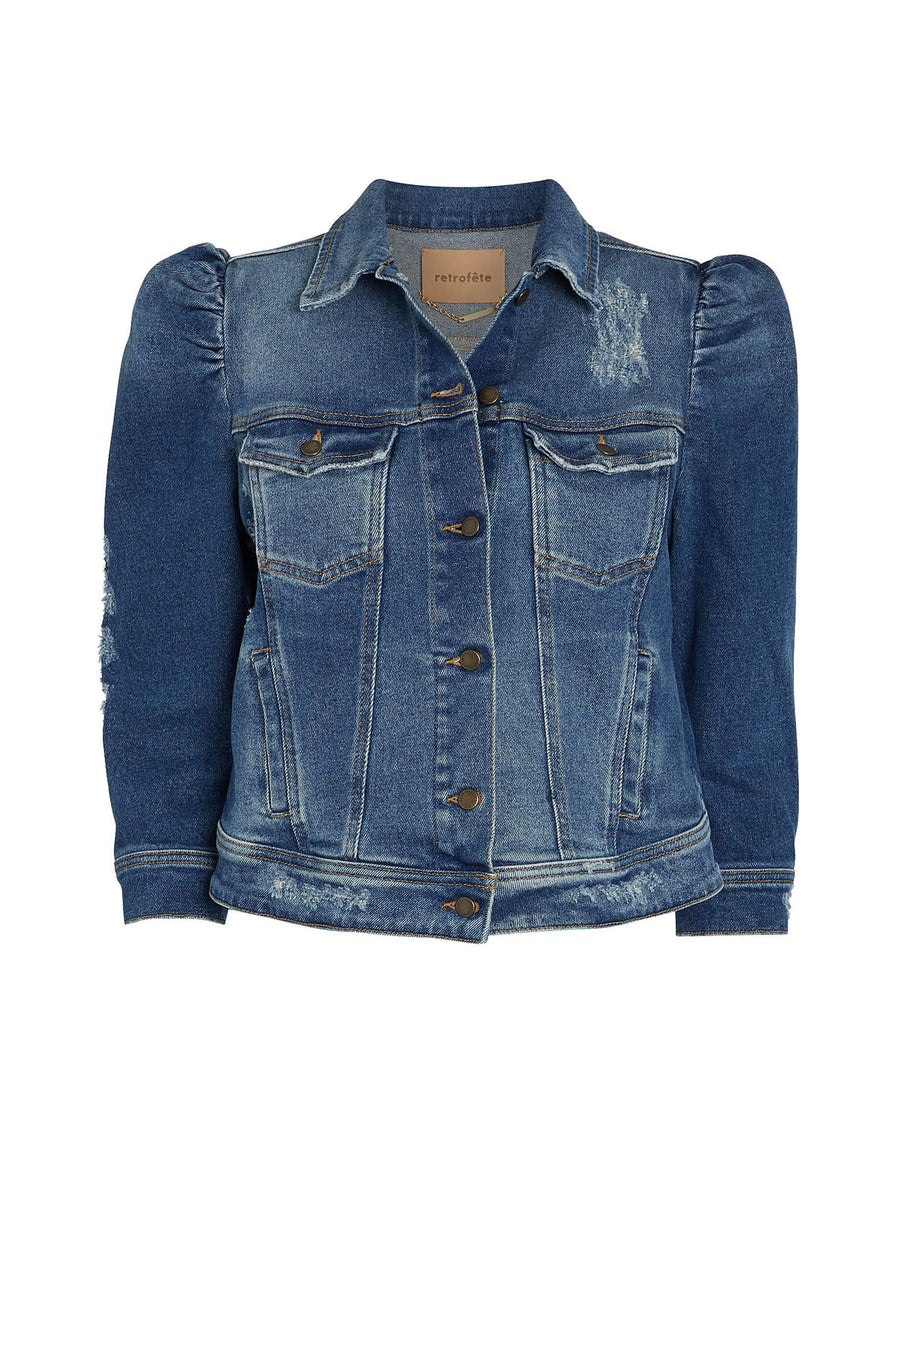 Retrofete Ada Jacket in Worn Vintage Blue available at The New Trend